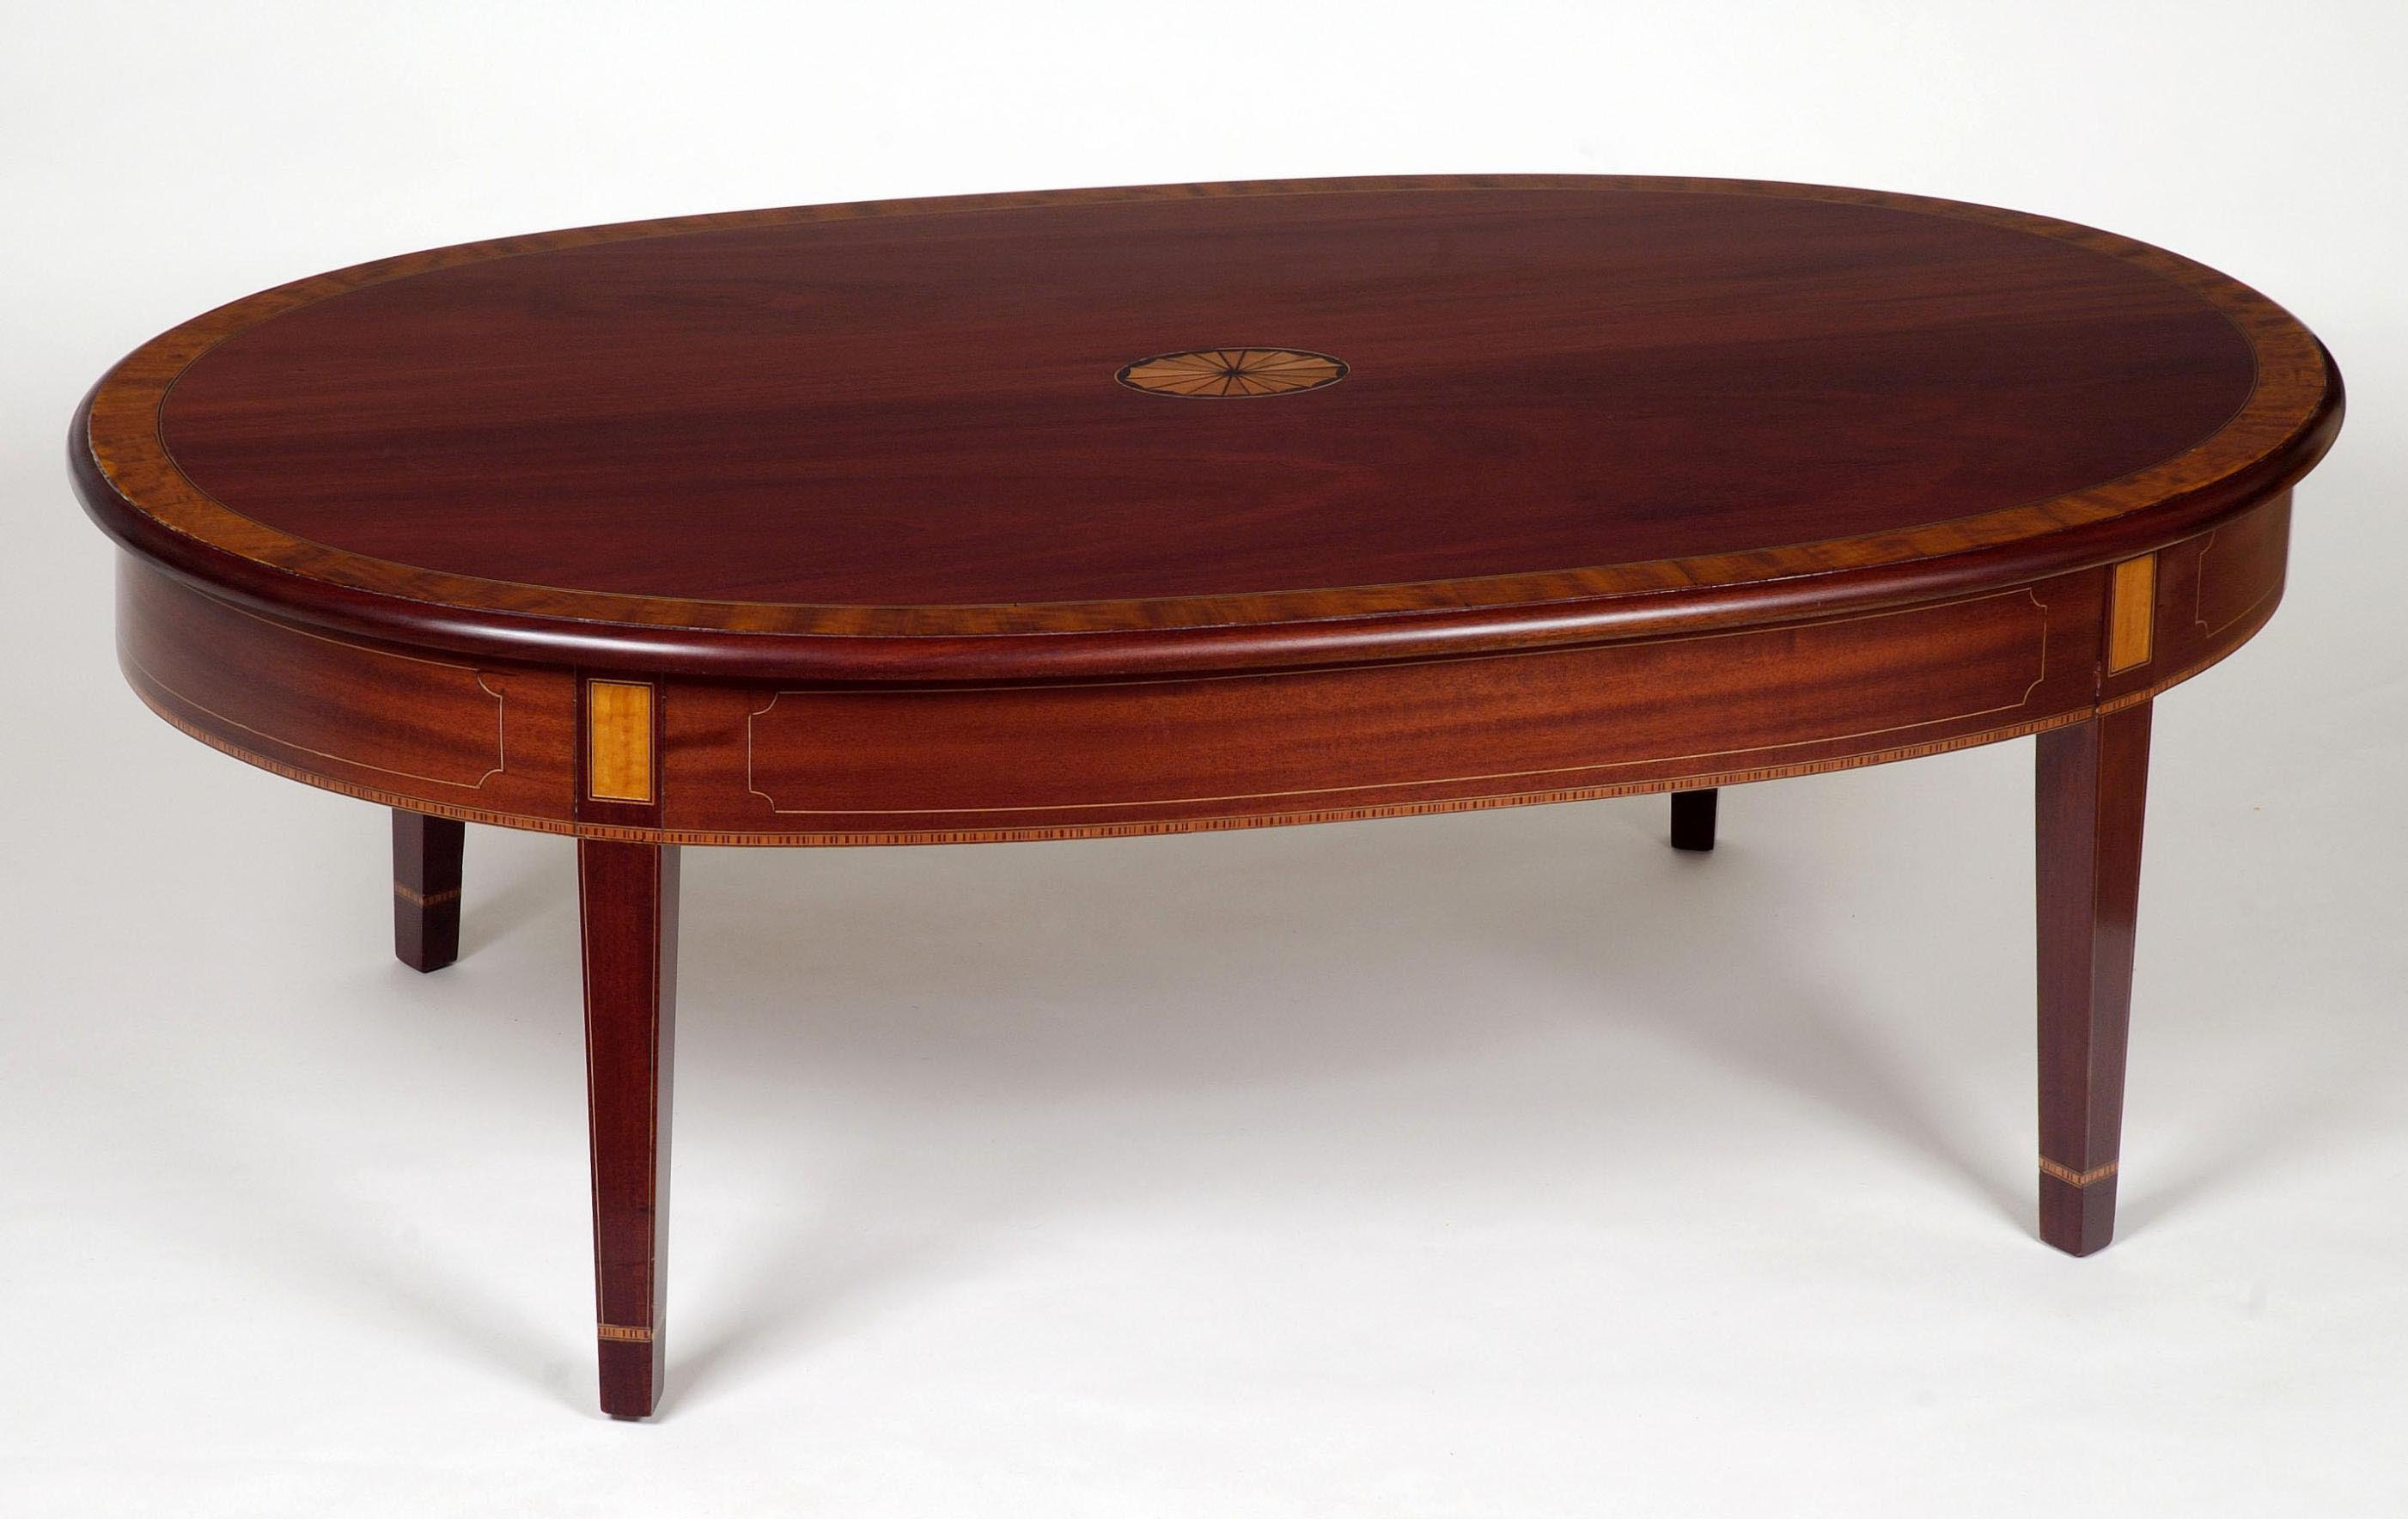 Table Ovale Design Oval Mahogany Coffee Table Coffee Table Design Ideas